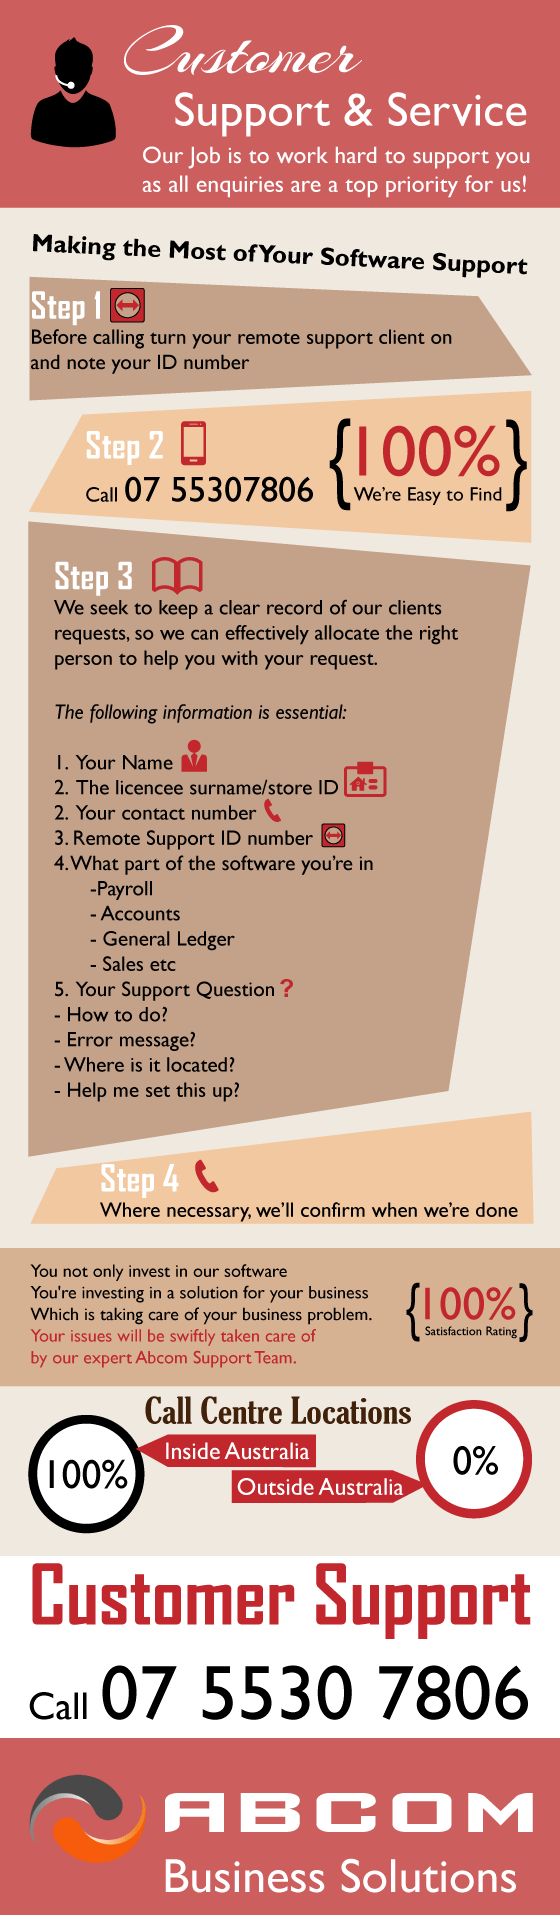 Franchise Software Technical Support Infographic